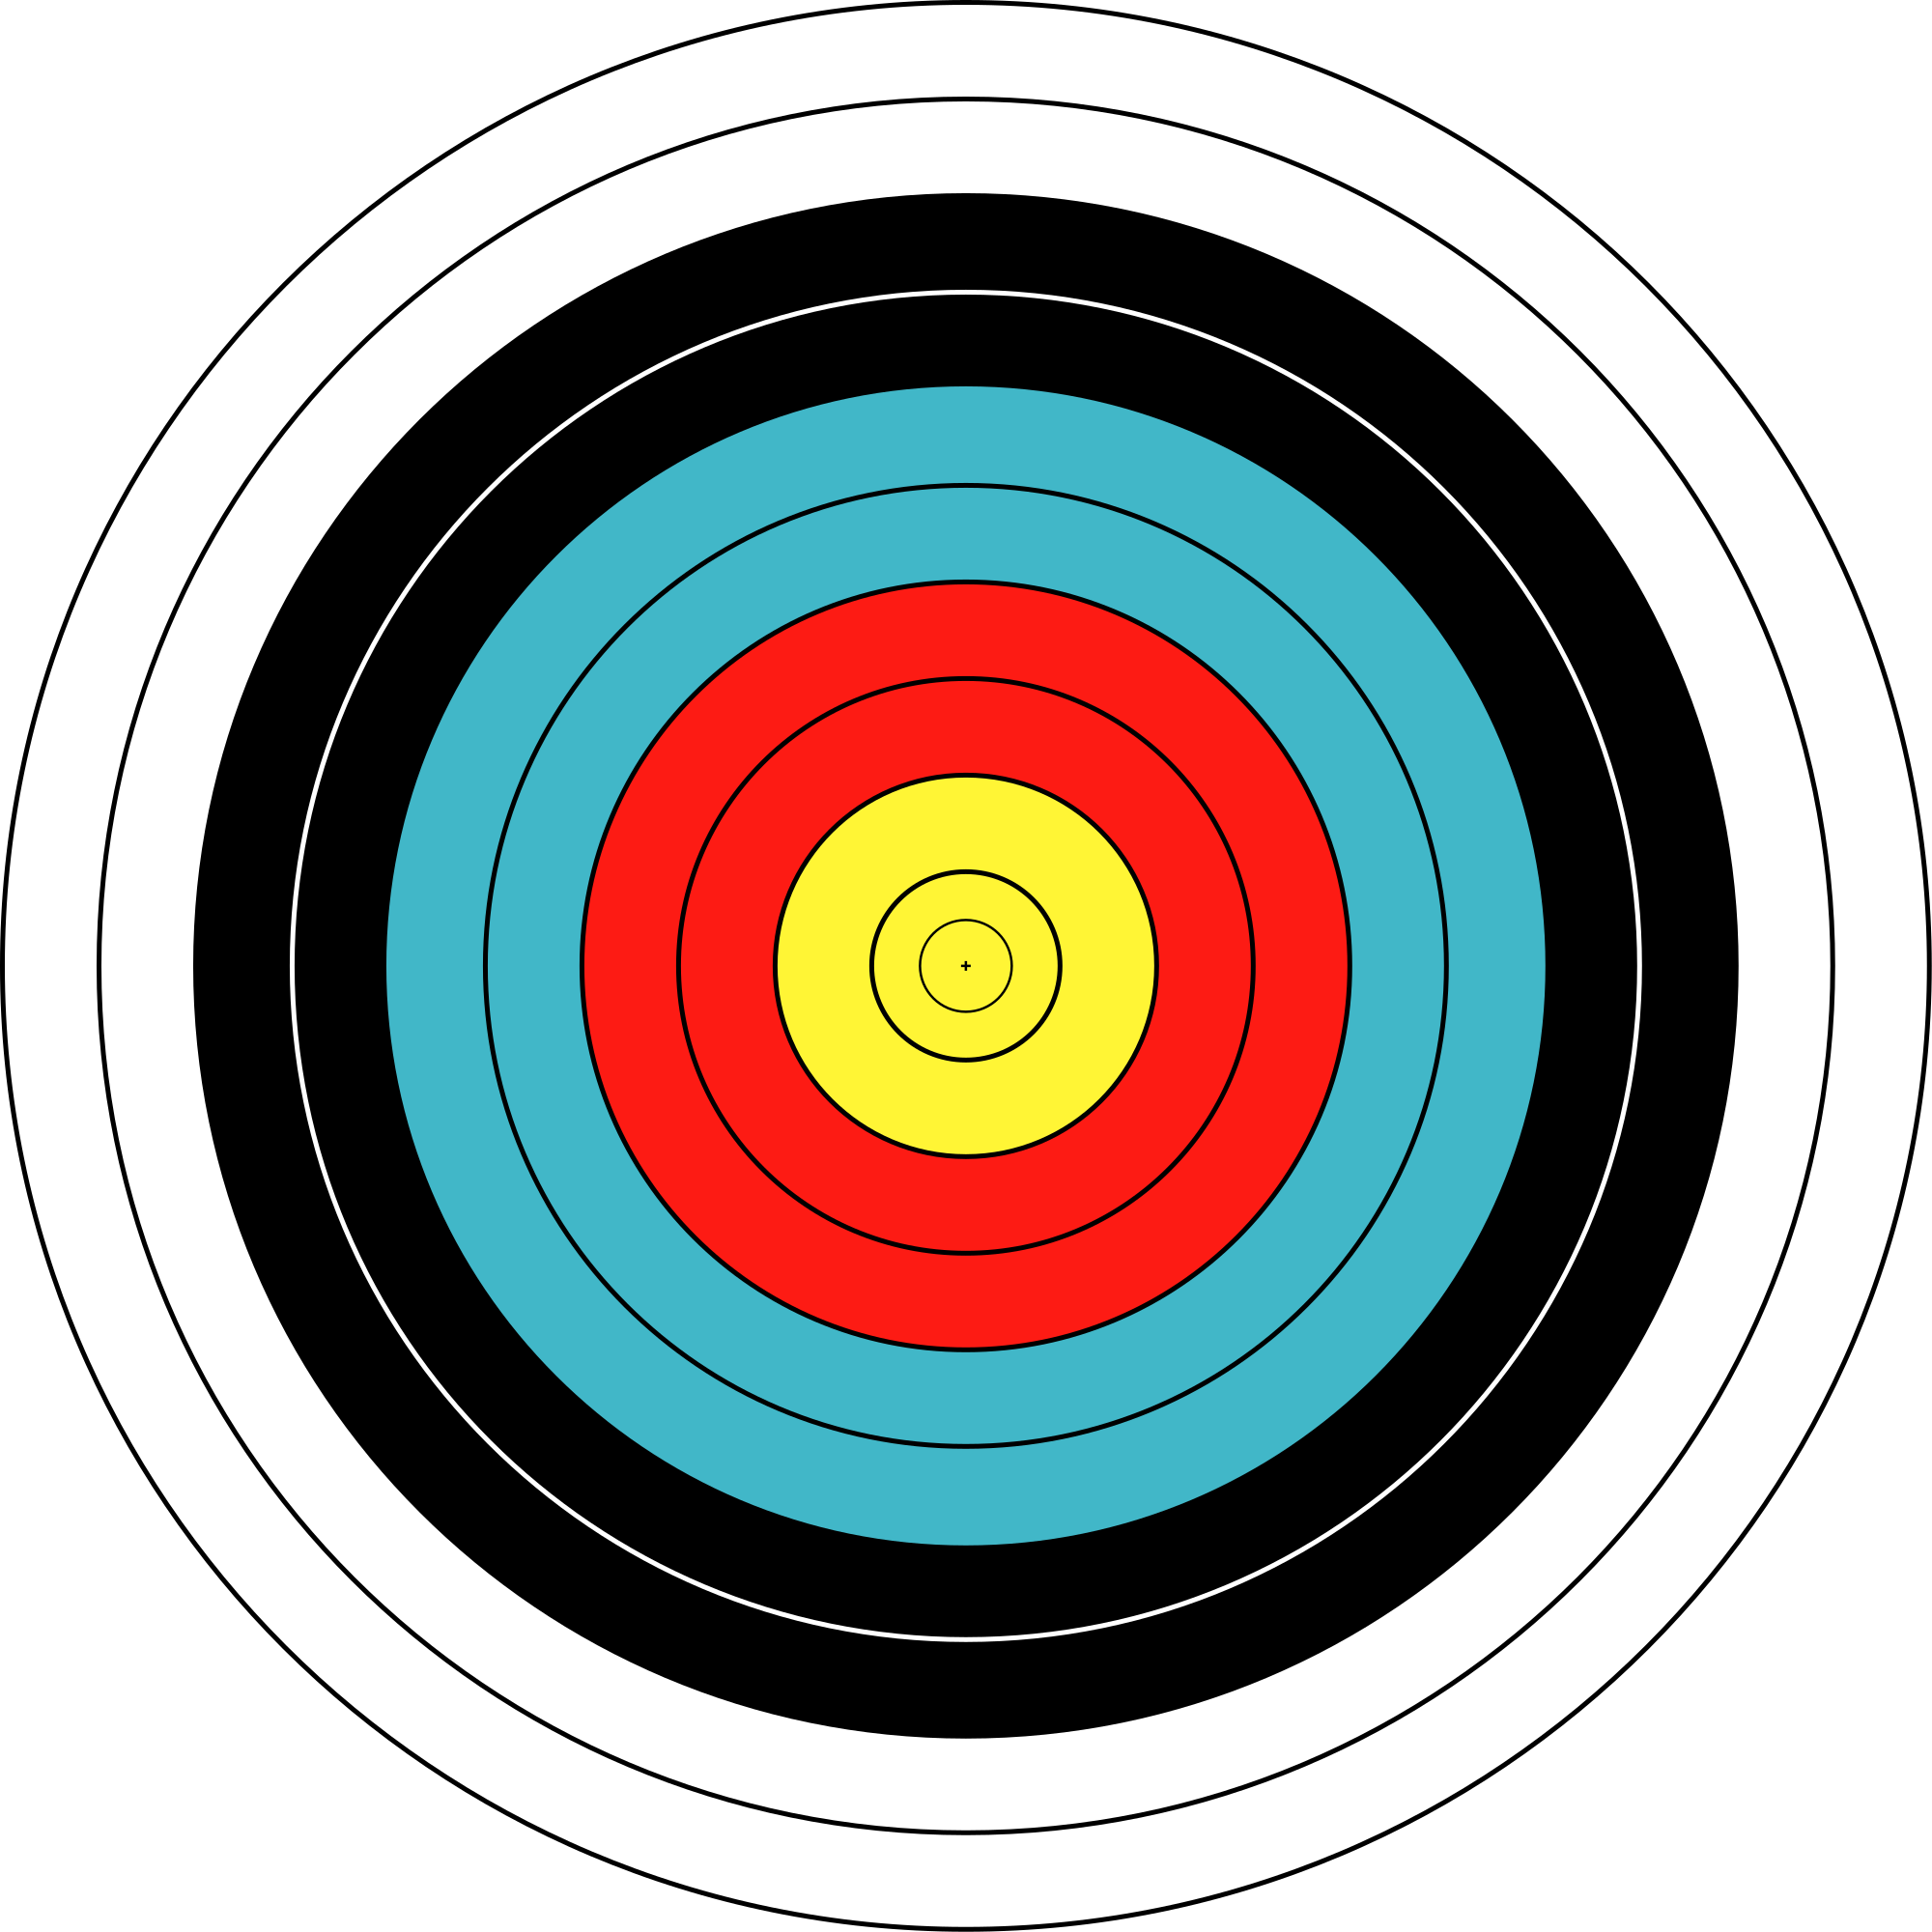 Bullseye svg printable. File wa cm archery